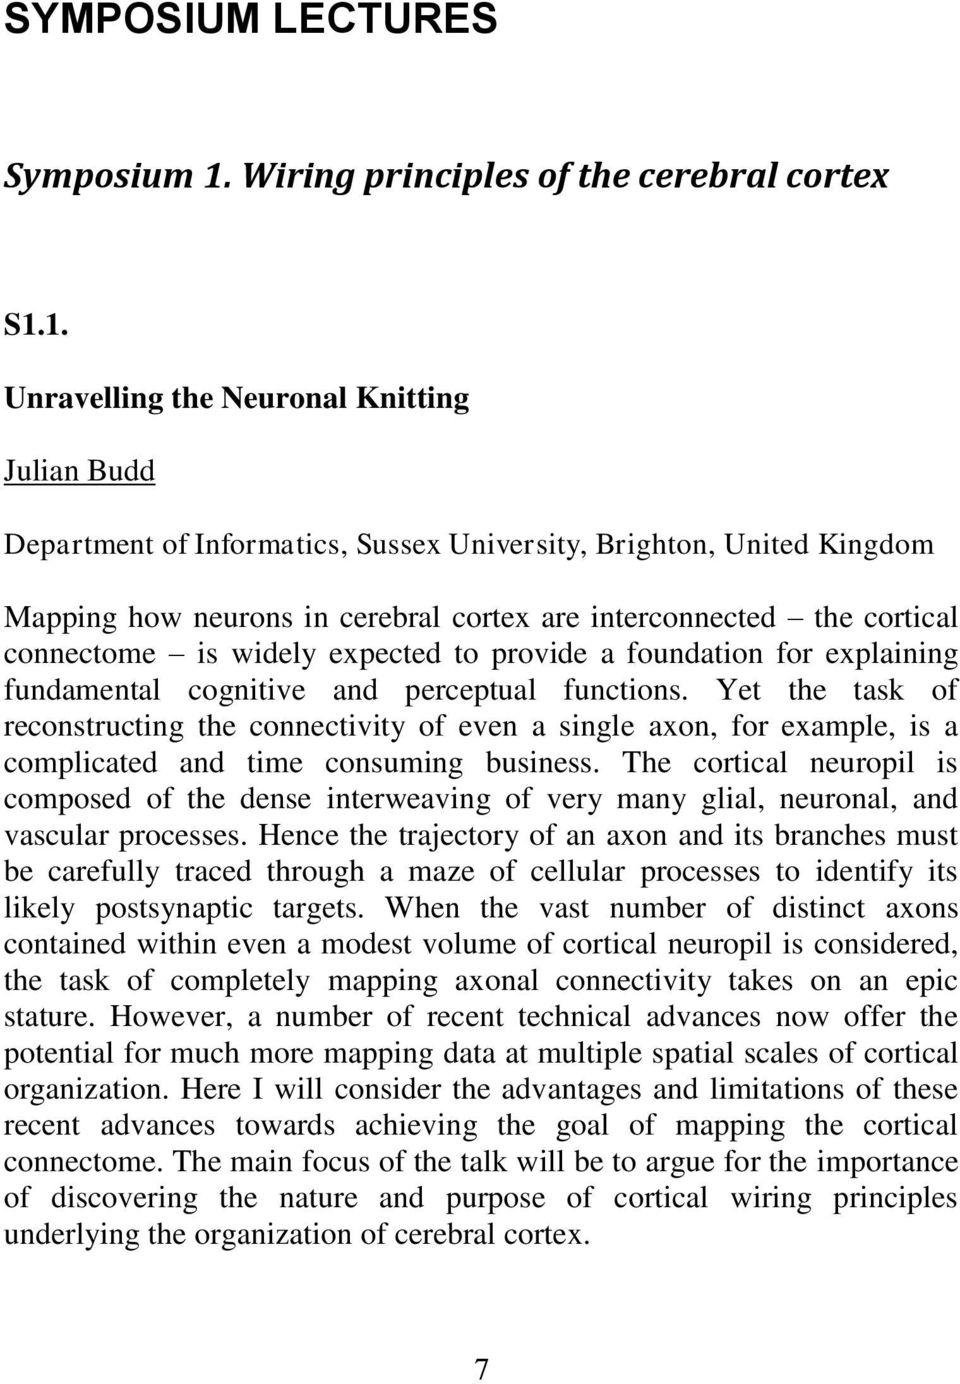 1. Unravelling the Neuronal Knitting Julian Budd Department of Informatics, Sussex University, Brighton, United Kingdom Mapping how neurons in cerebral cortex are interconnected the cortical